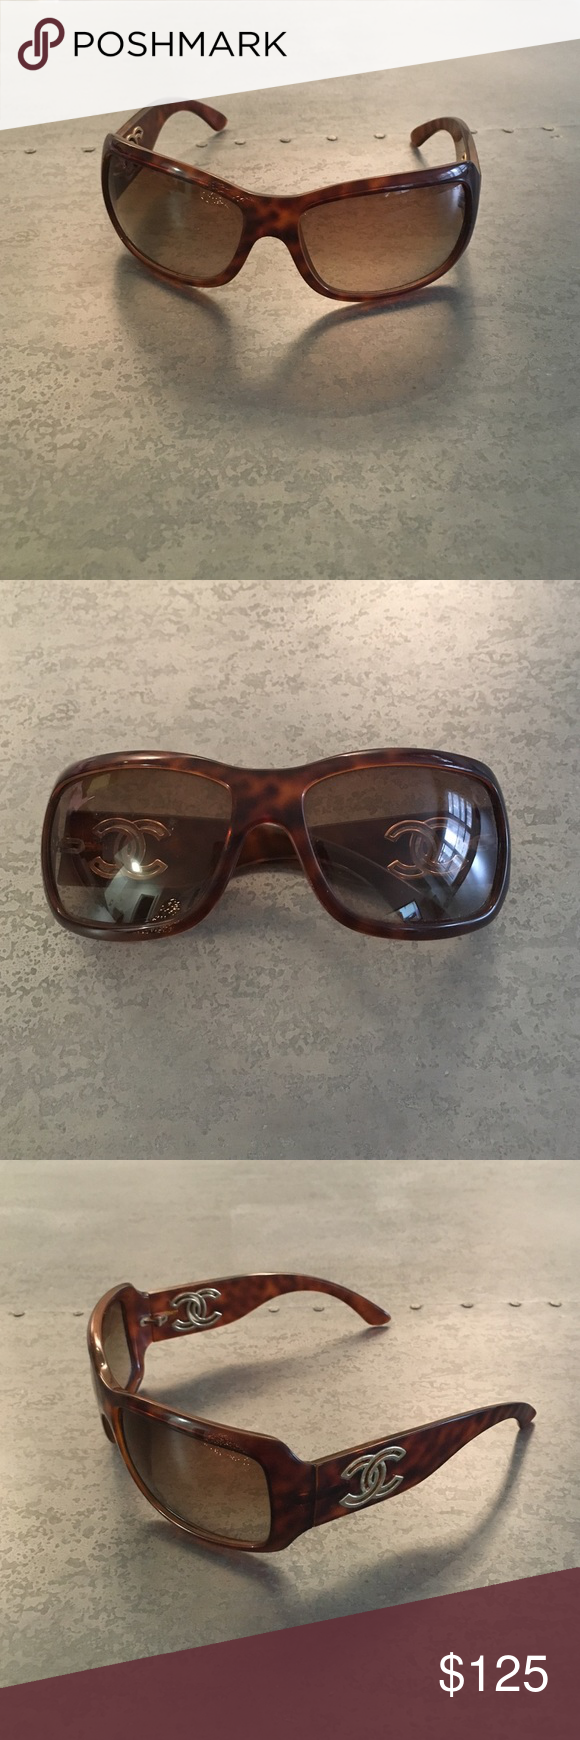 Chanel sunglasses Tortoise shell frames with deep brown lenses and gold C accents. Minor scratch on the right lens and slight wear on the gold C's. Come with soft case. CHANEL Accessories Sunglasses